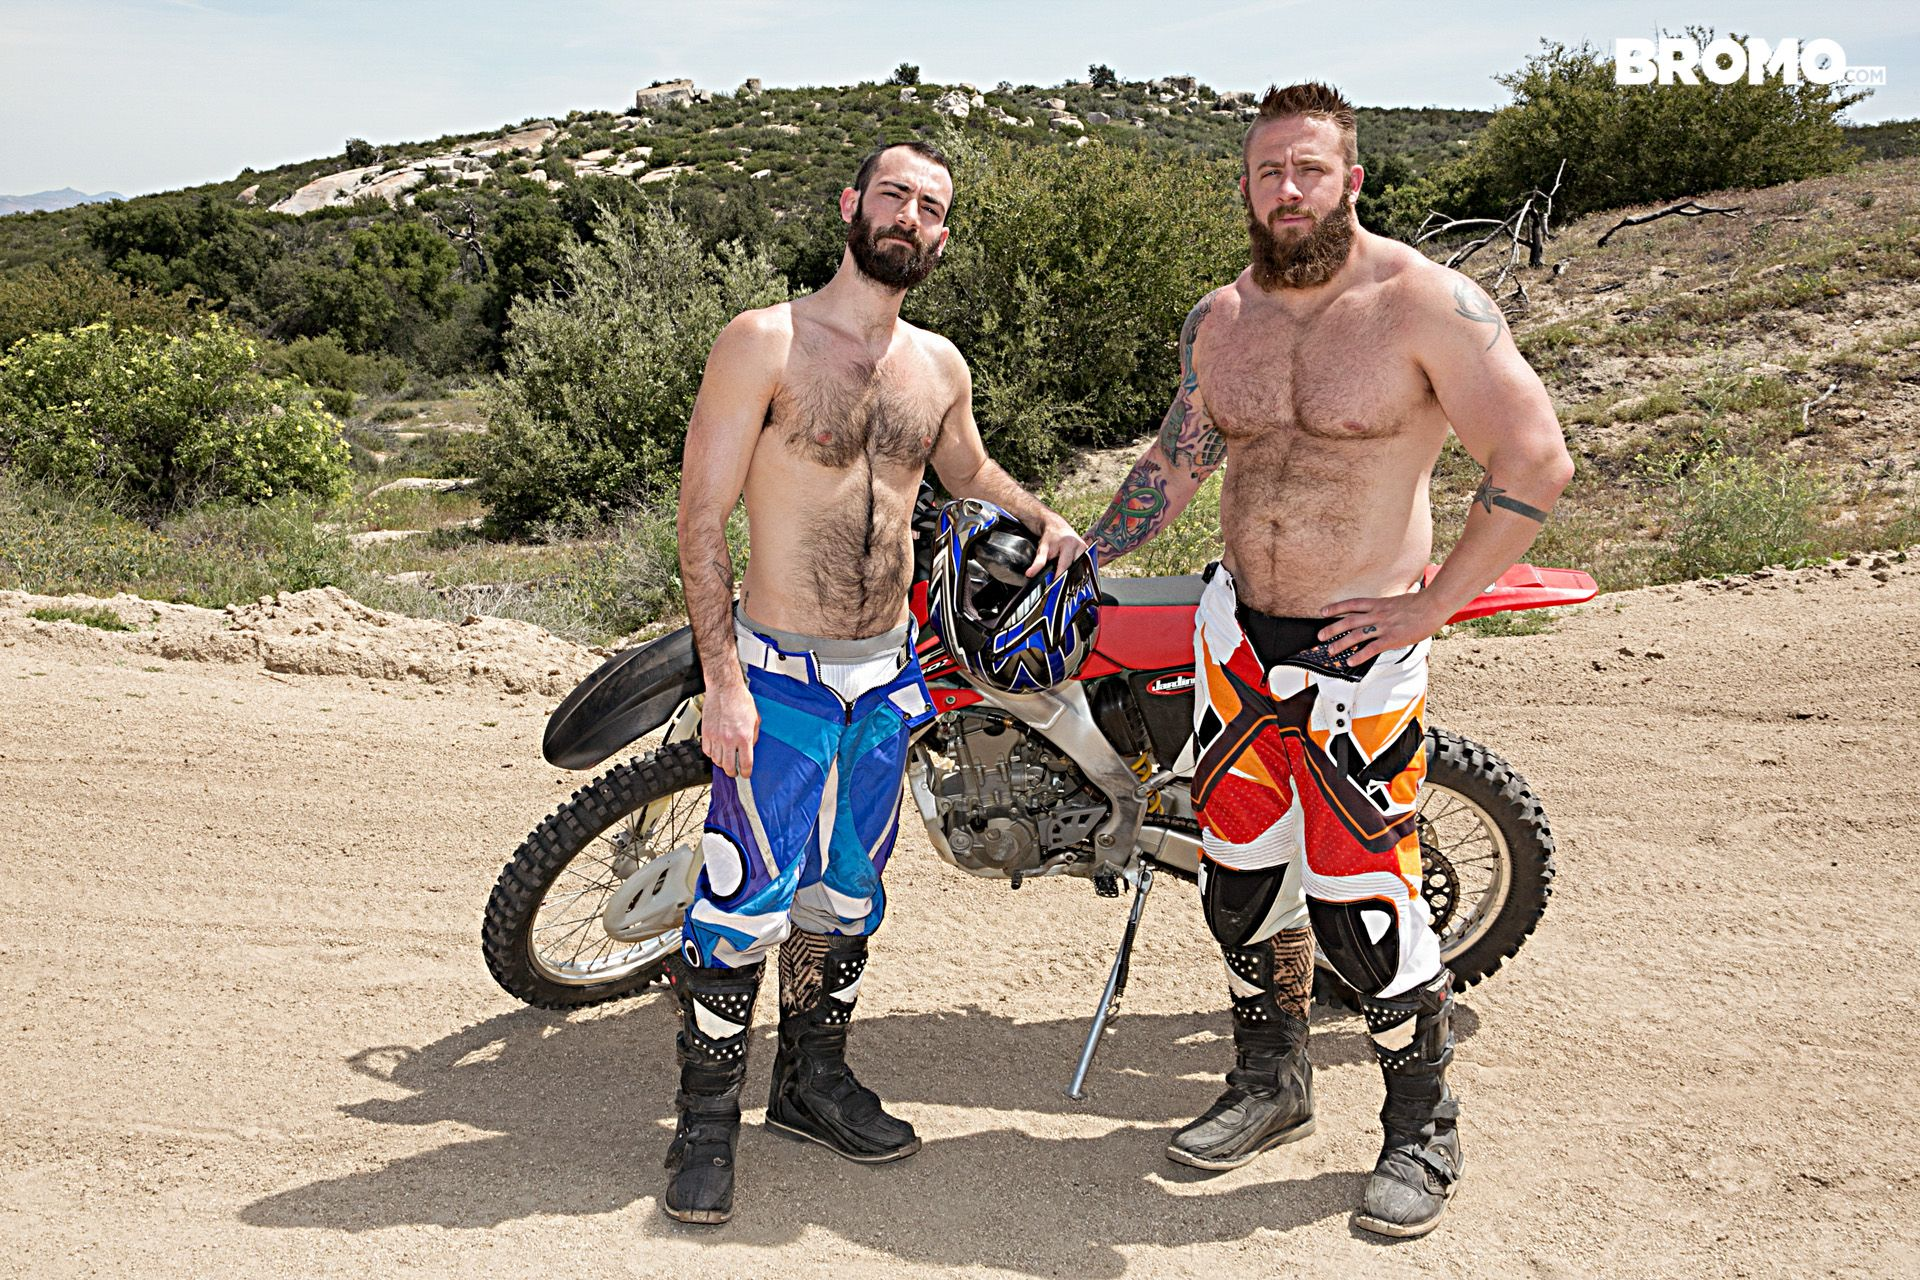 Gay and motocross